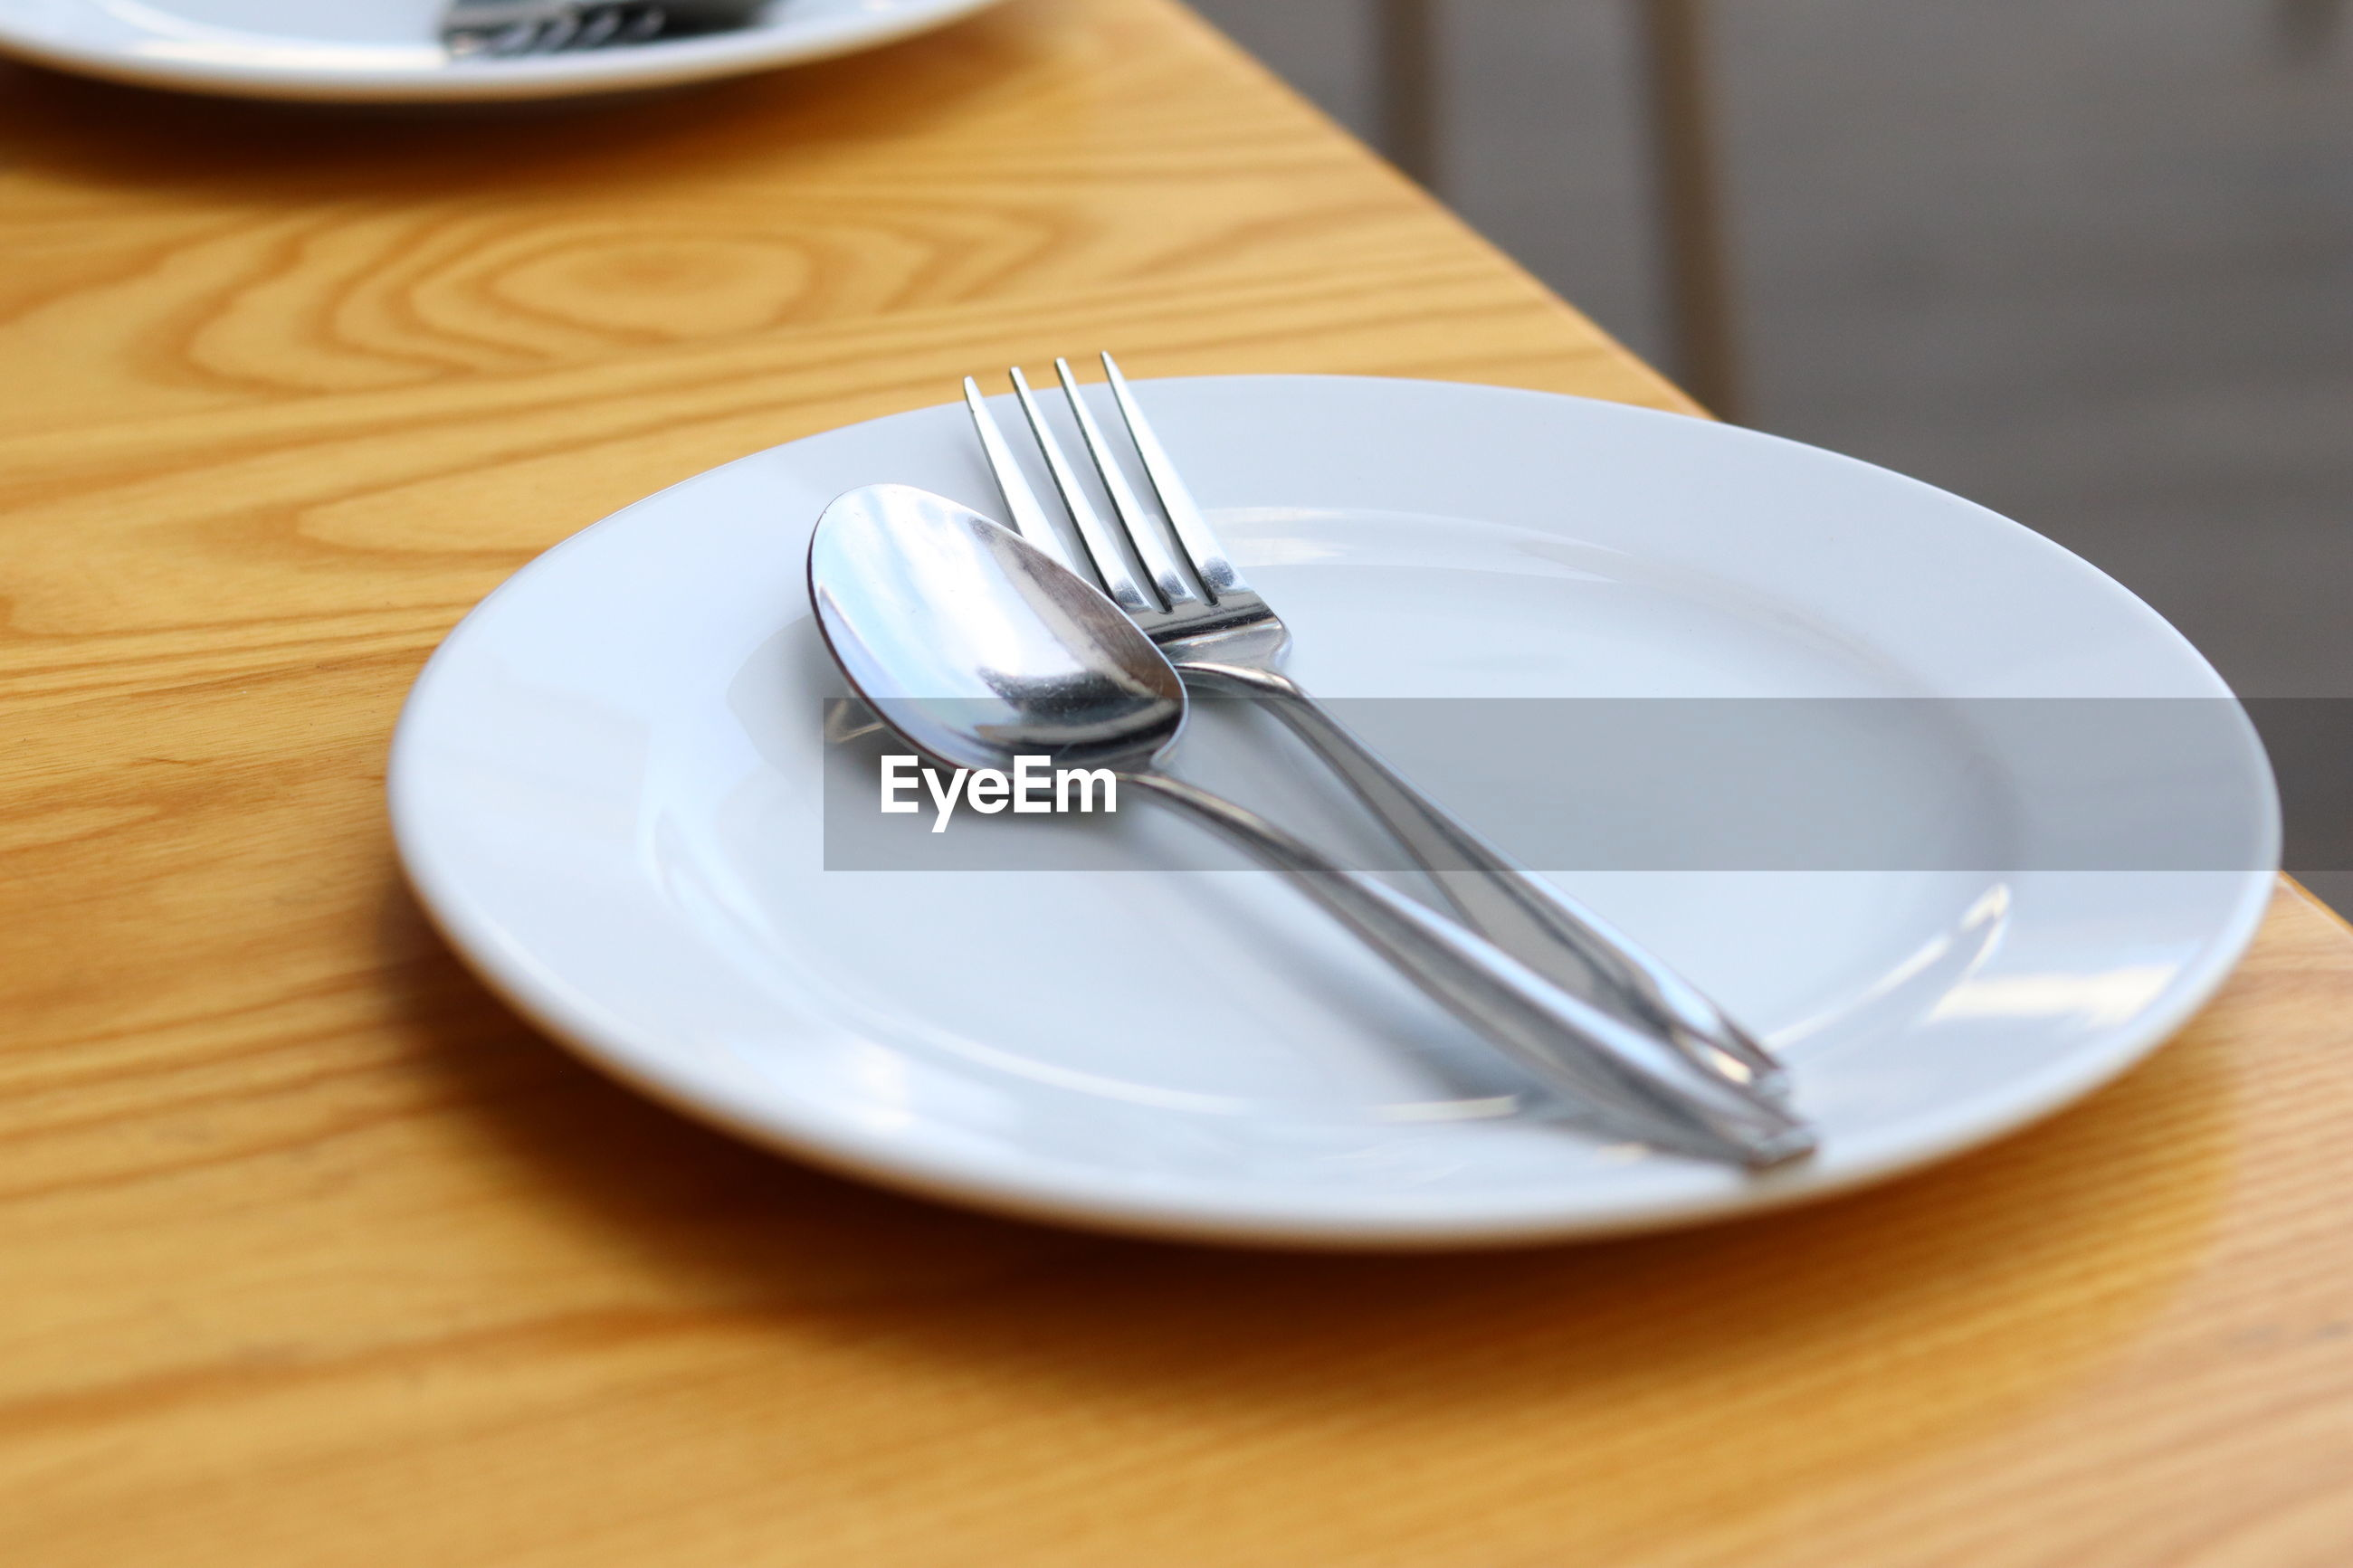 High angle view of fork and spoon in plate on wooden table